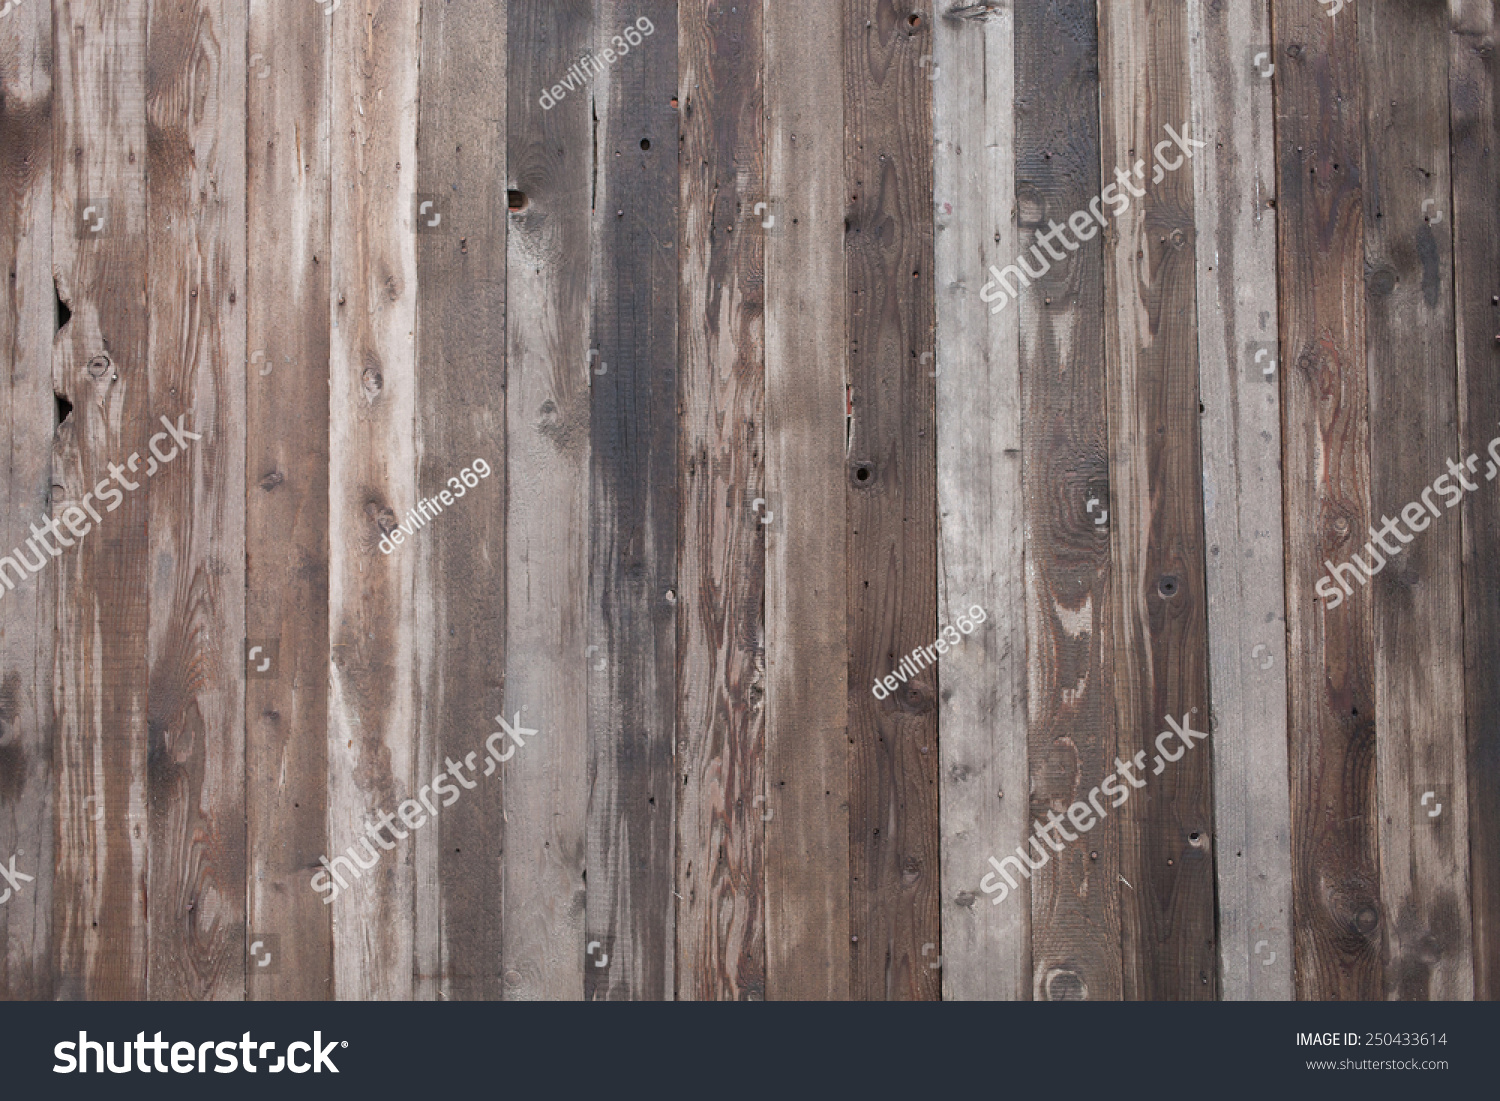 Weathered Barn Wood : Rustic Weathered Barn Wood Background With Knots Stock Photo 250433614 ...